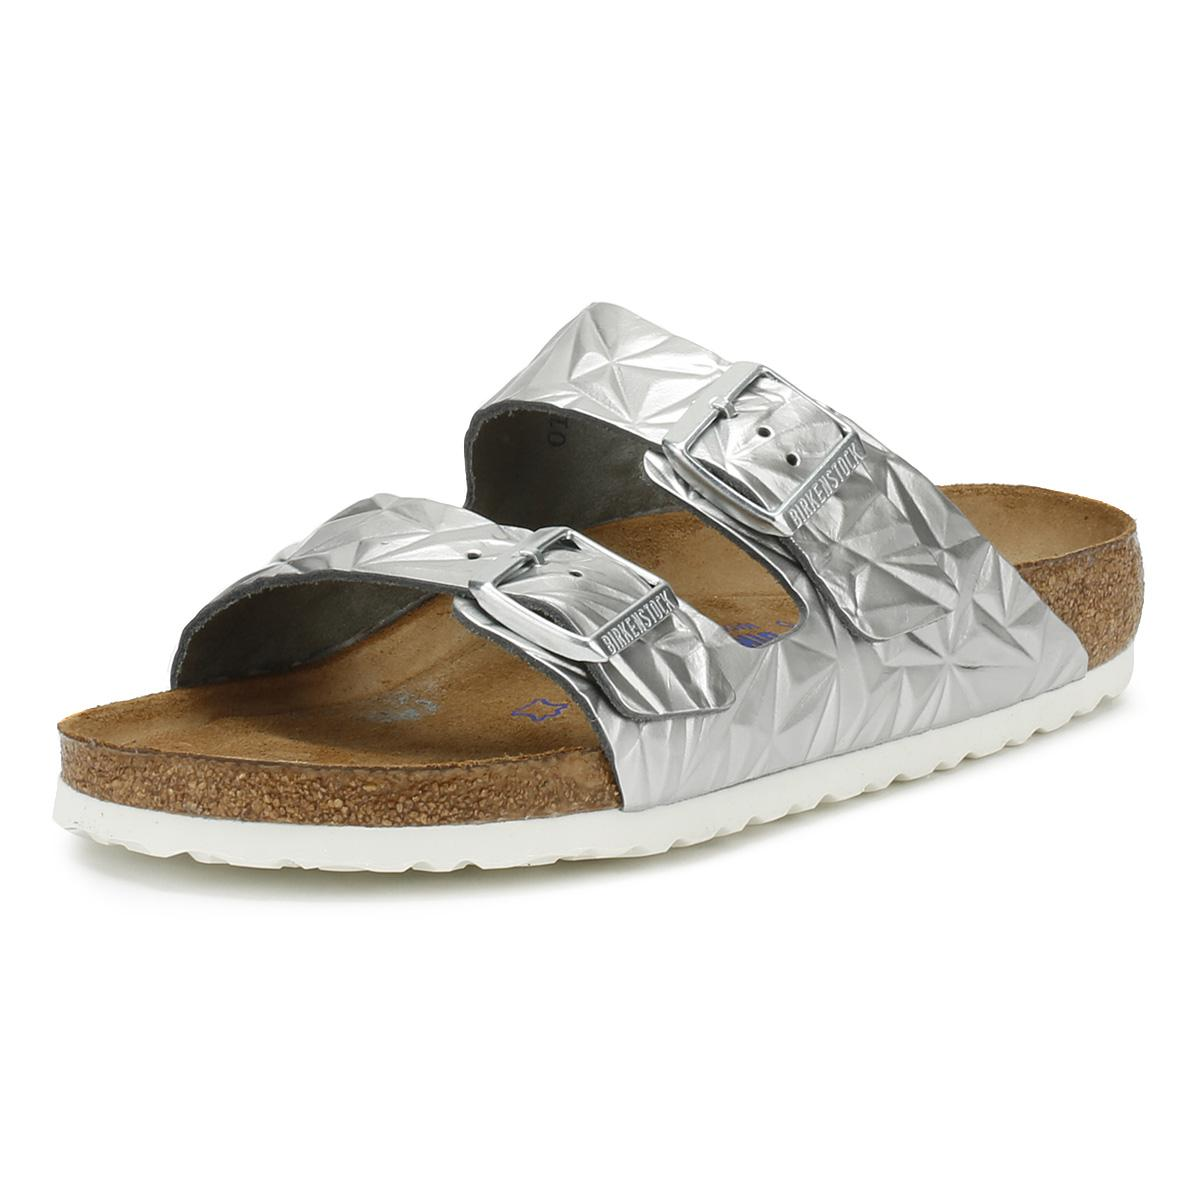 6a4d534cdf21 Birkenstock - Metallic Womens Spectral Silver Arizona Sandals Women s Mules    Casual Shoes In Silver -. View fullscreen